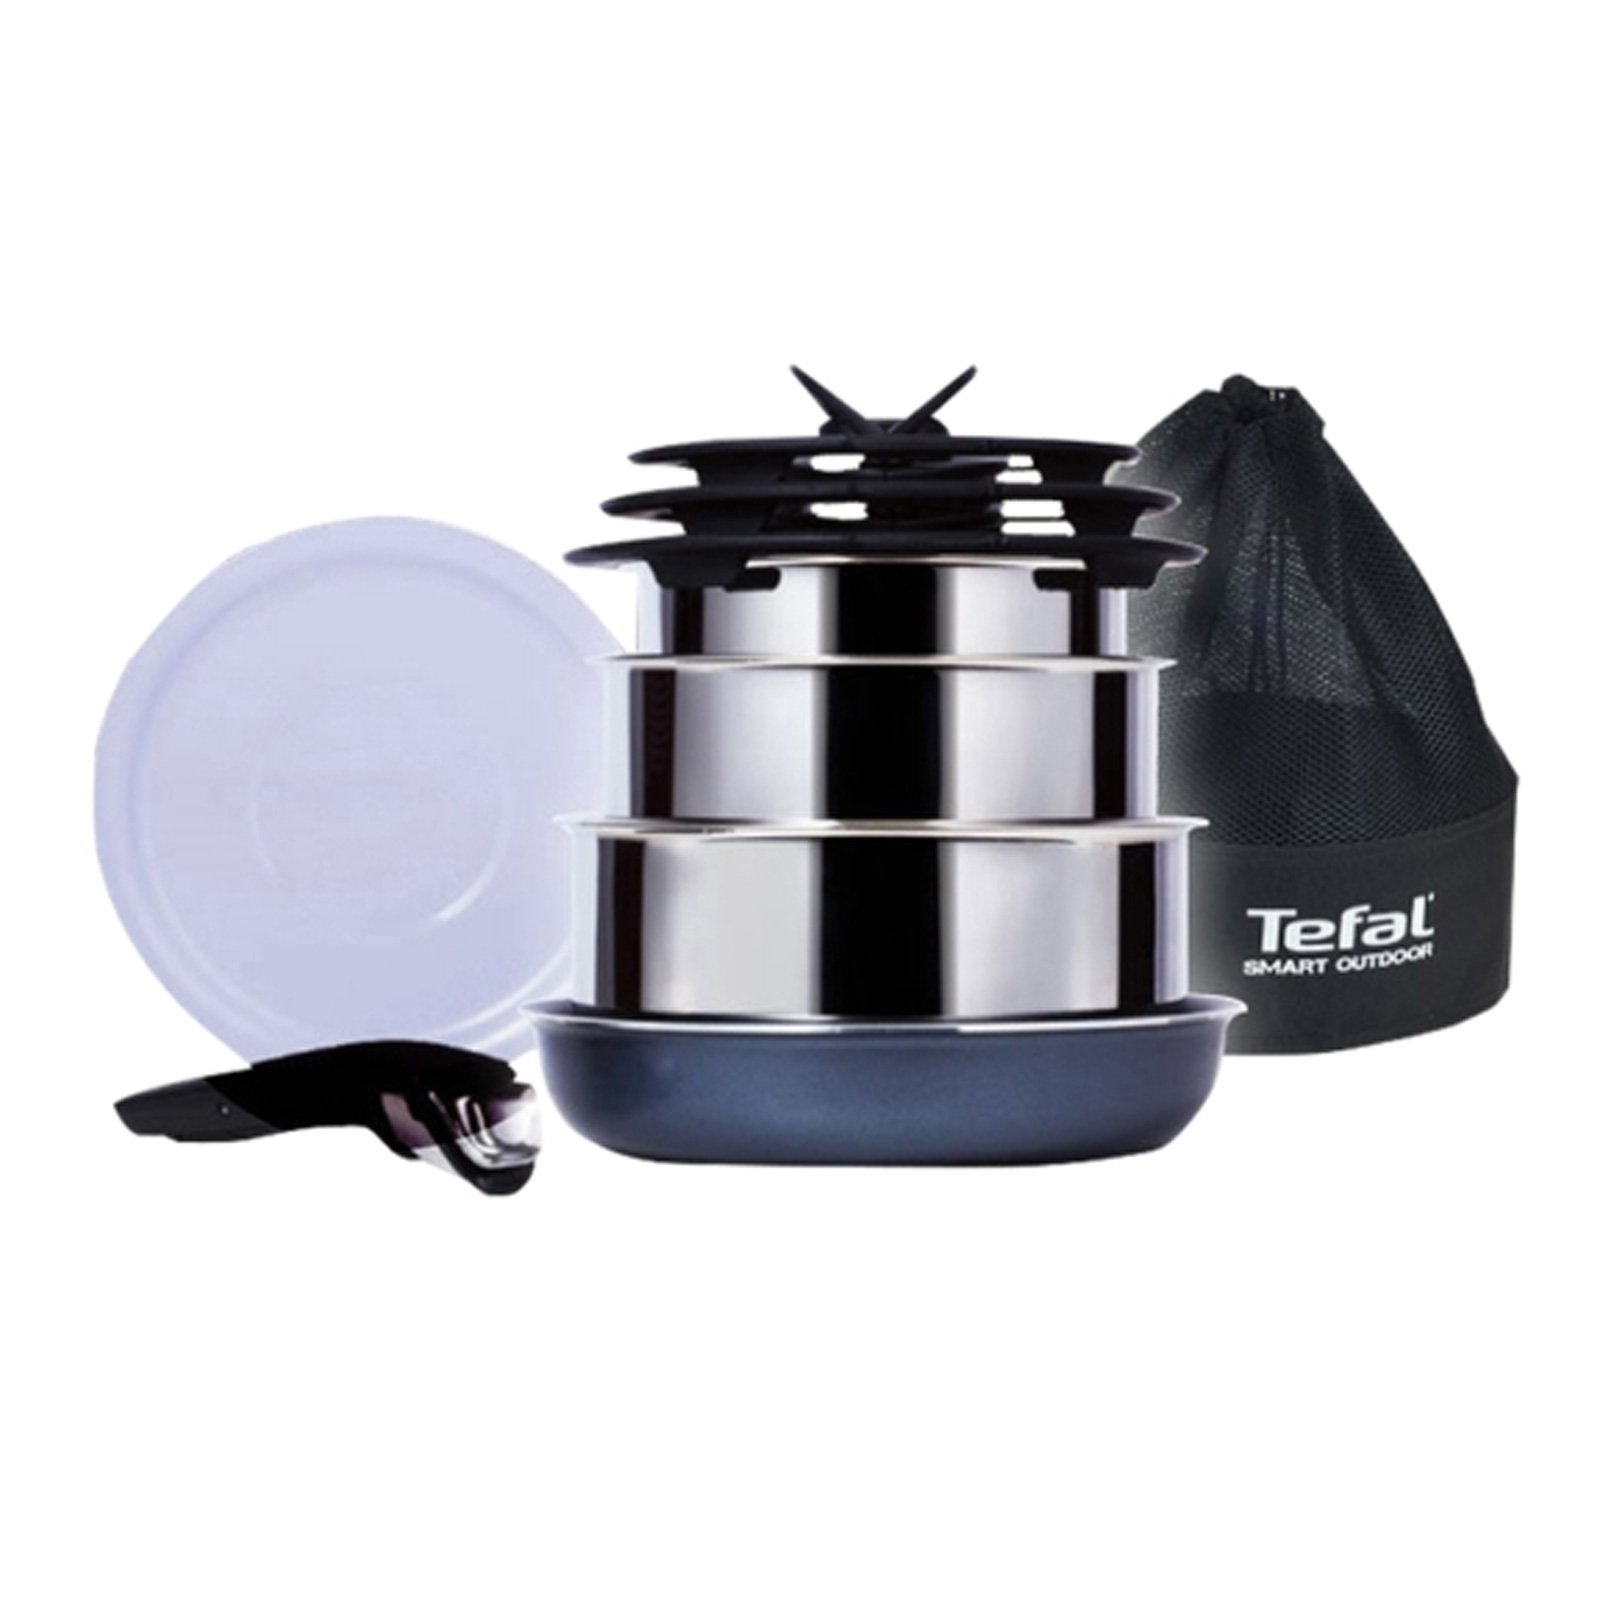 Tefal Smart Outdoor Magic Hands Camping 9P Set Stainless Pot Fry Pan by Tefal (Image #1)